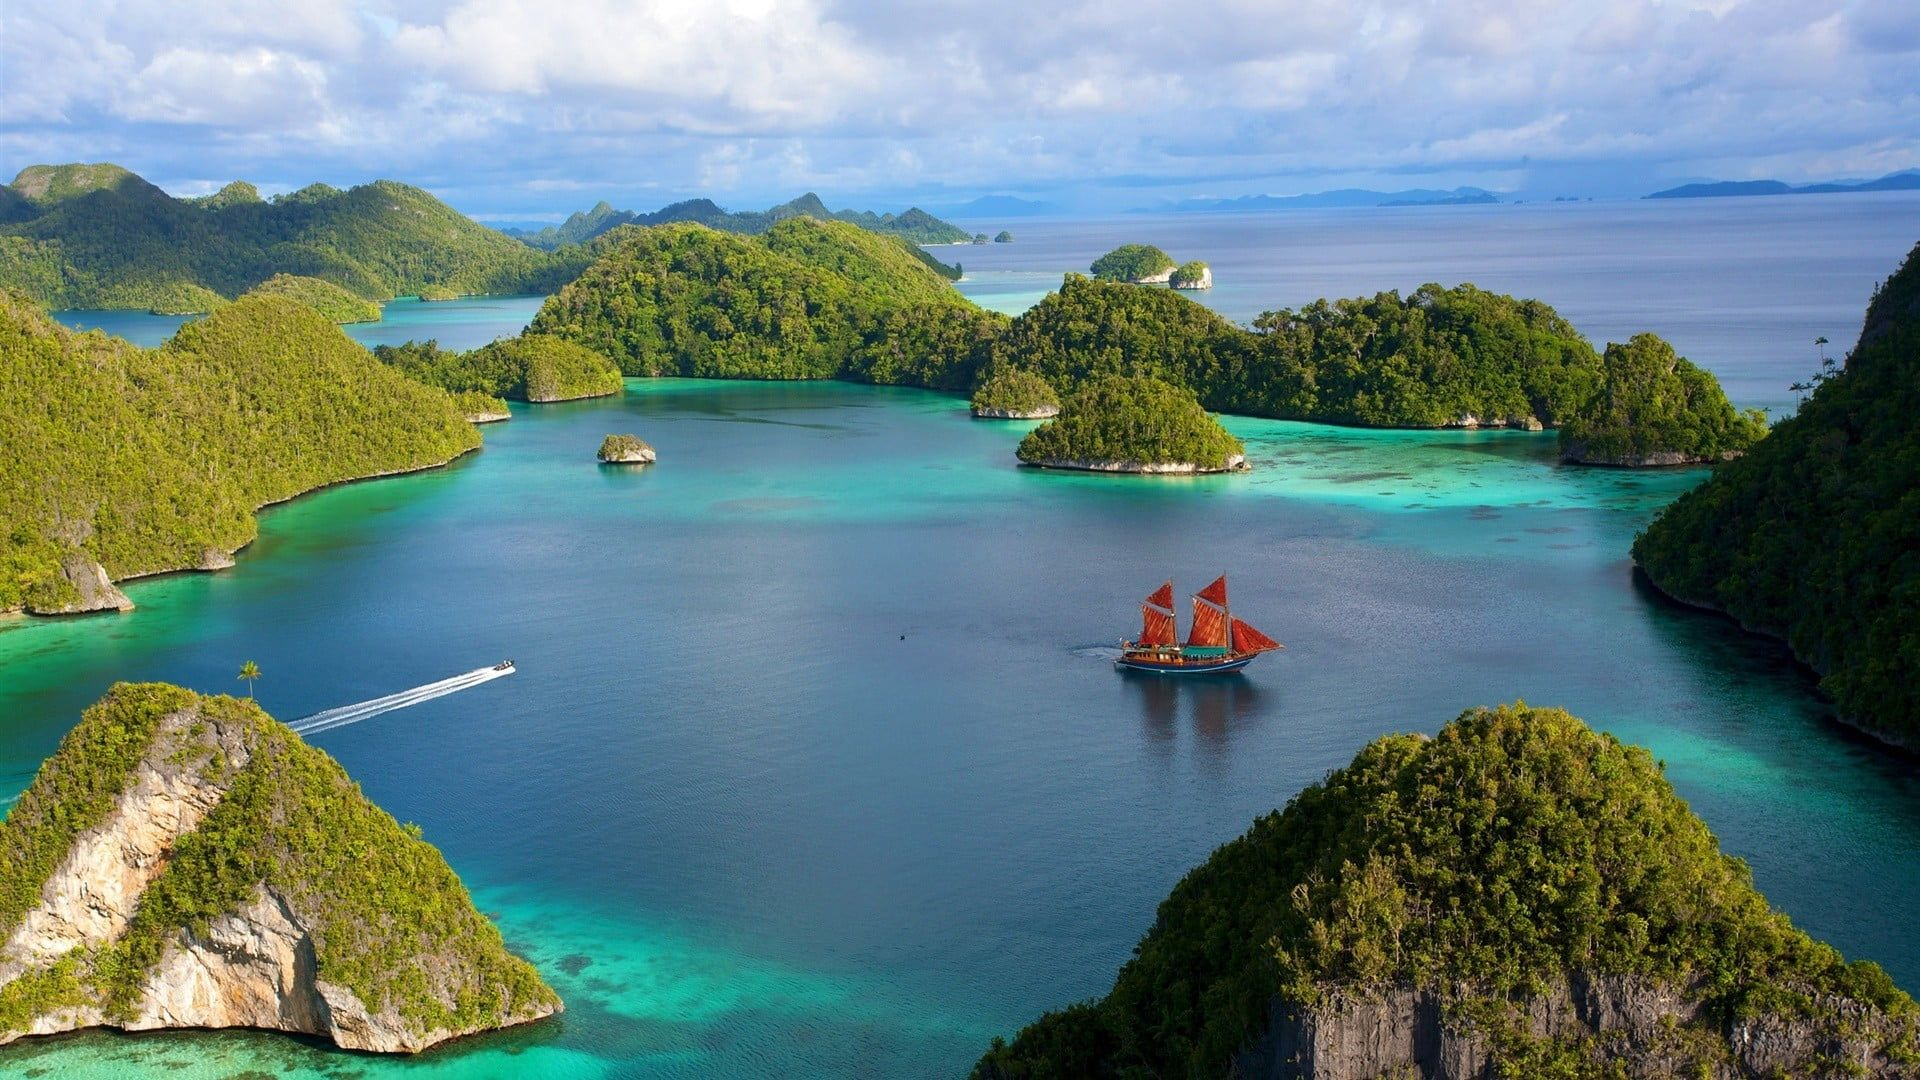 Green Mountains Under White Cloudy Sky Island Sea Boat Mountains Nature Landscape Water Trees Indonesia Forest Nature Wallpaper Sky Best Scuba Diving